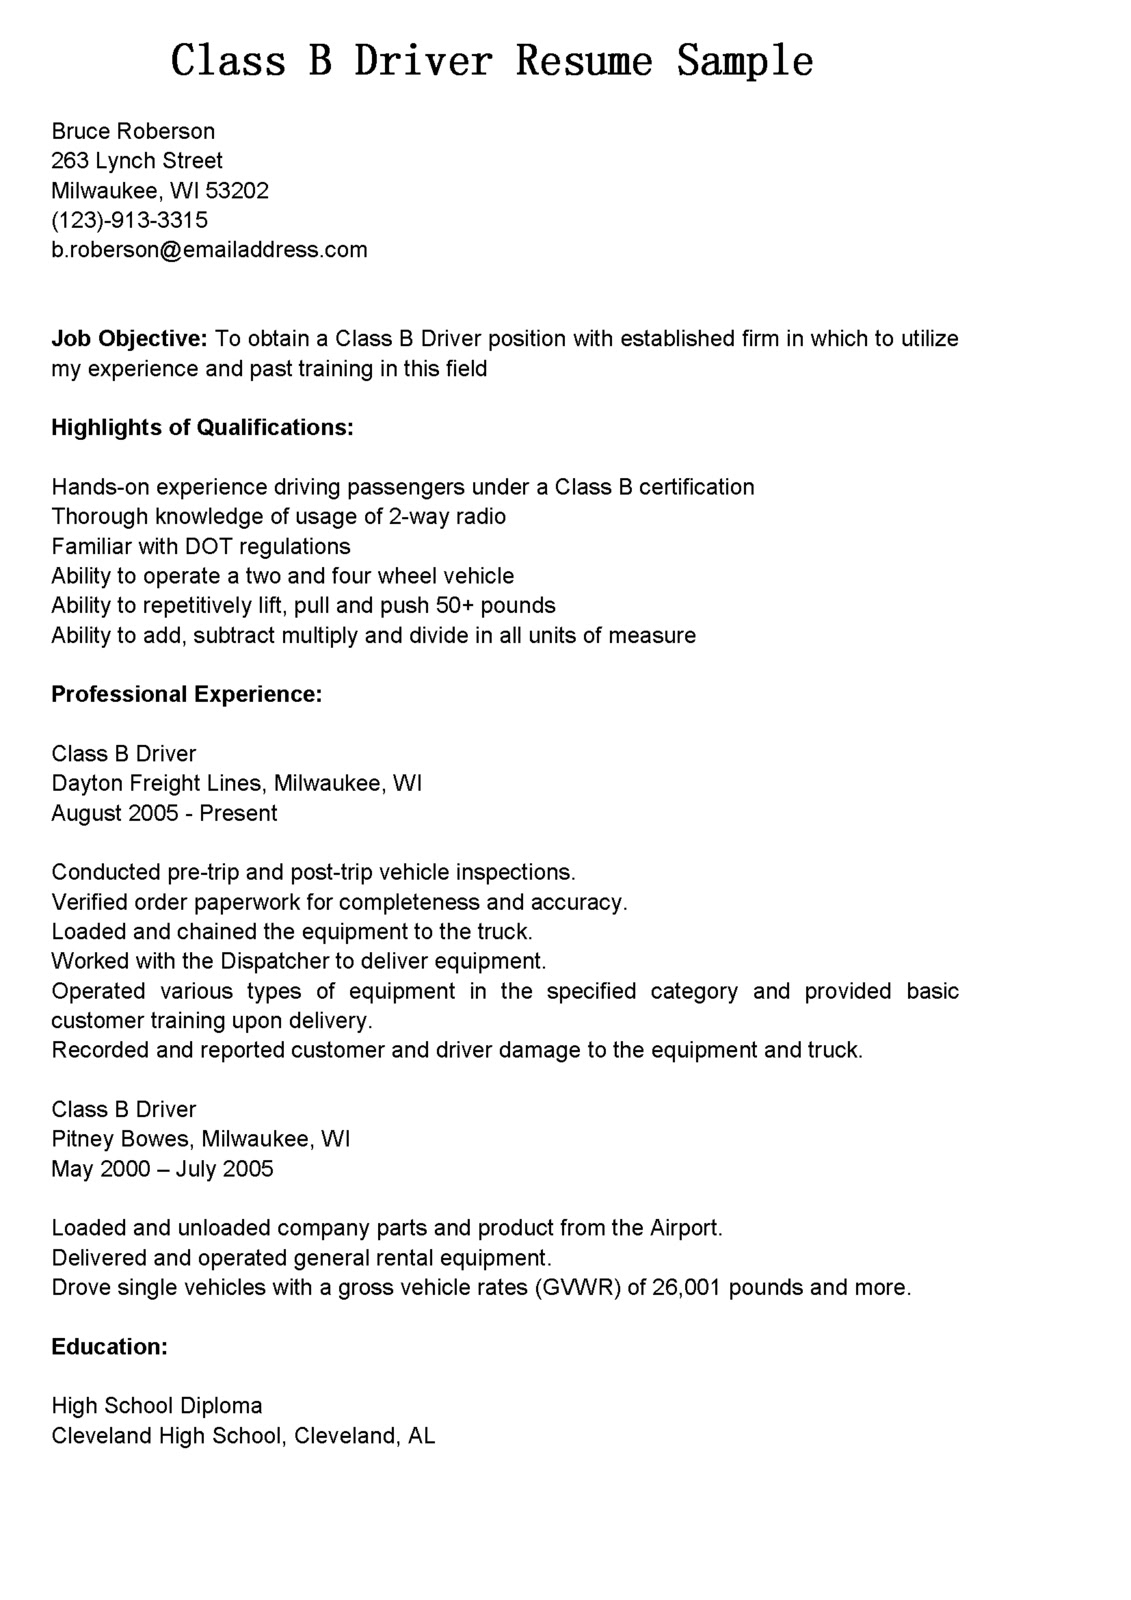 Cdl Driver Resume Sample Driver Resumes Class B Driver Resume Sample